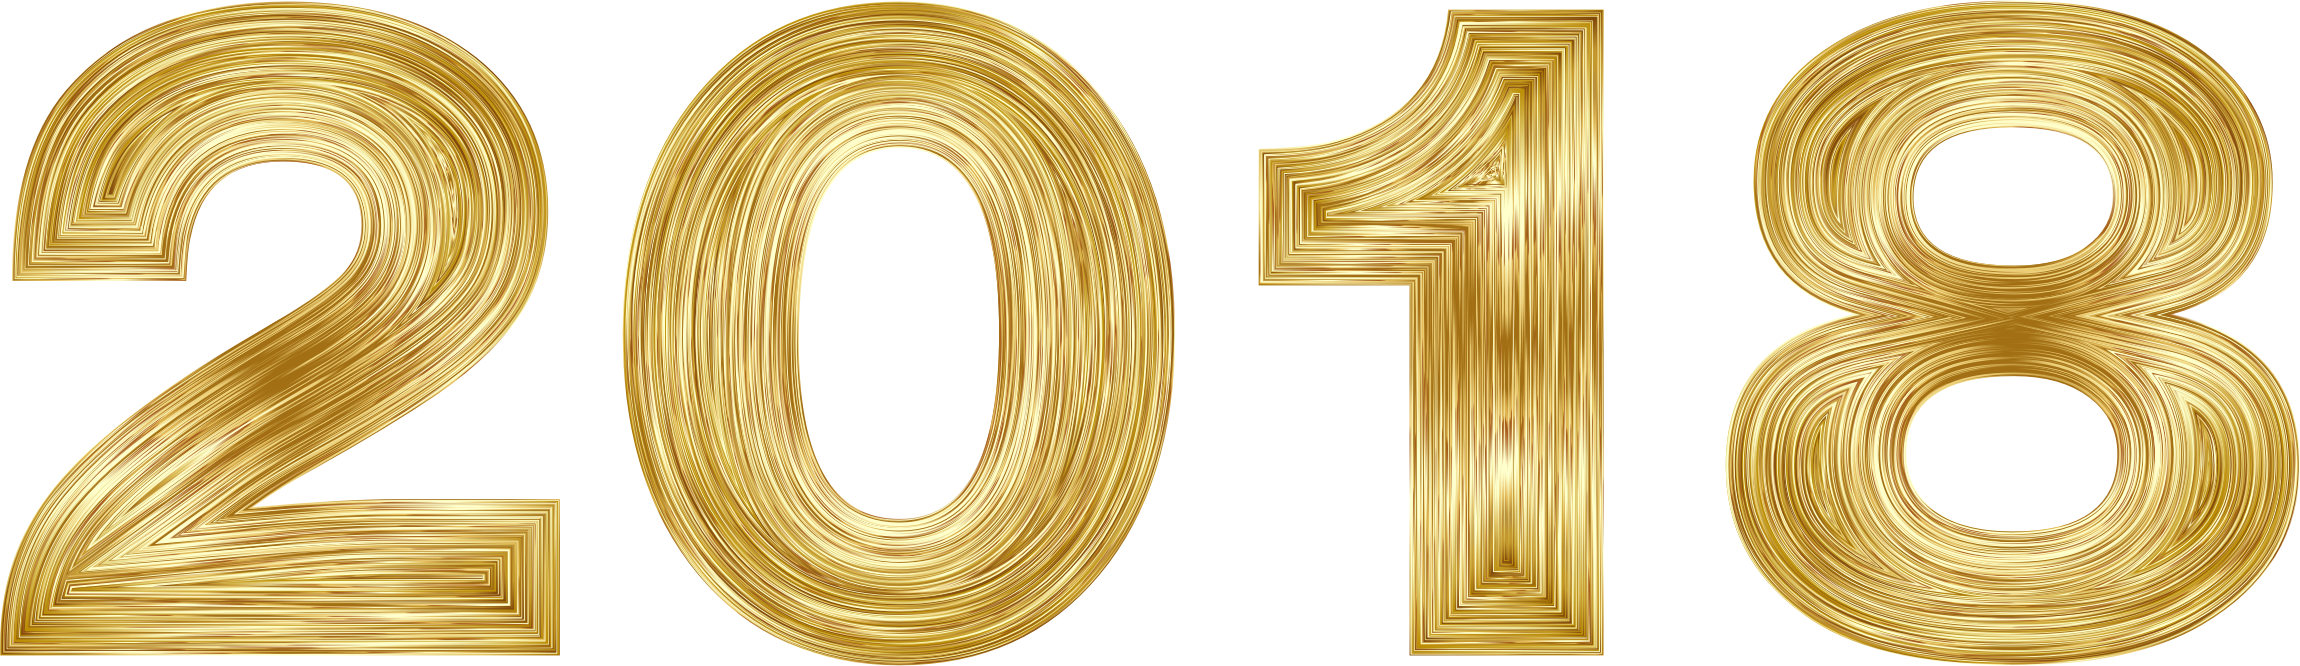 2018 clipart. Gold big image png